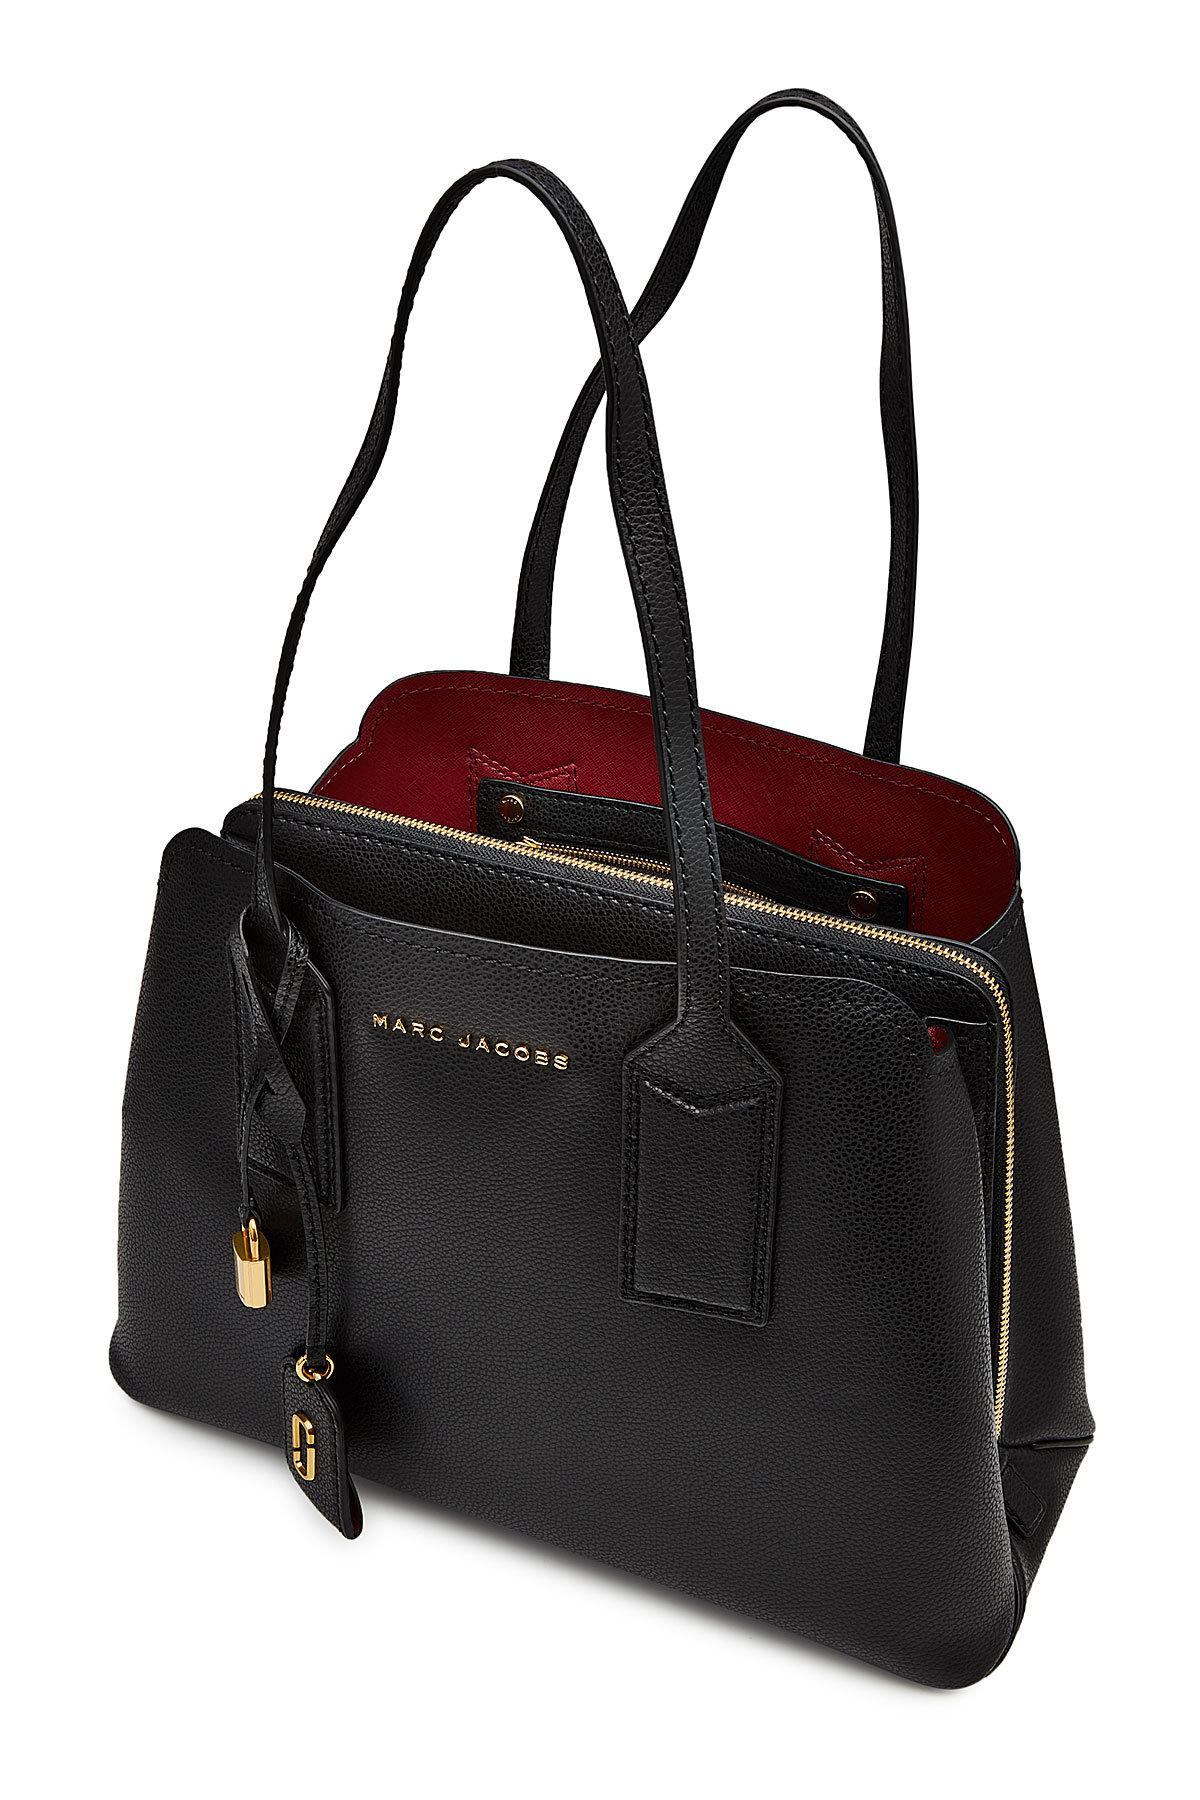 Lyst - Sac à main en cuir The Editor Marc Jacobs en coloris Noir 1173fadc700d